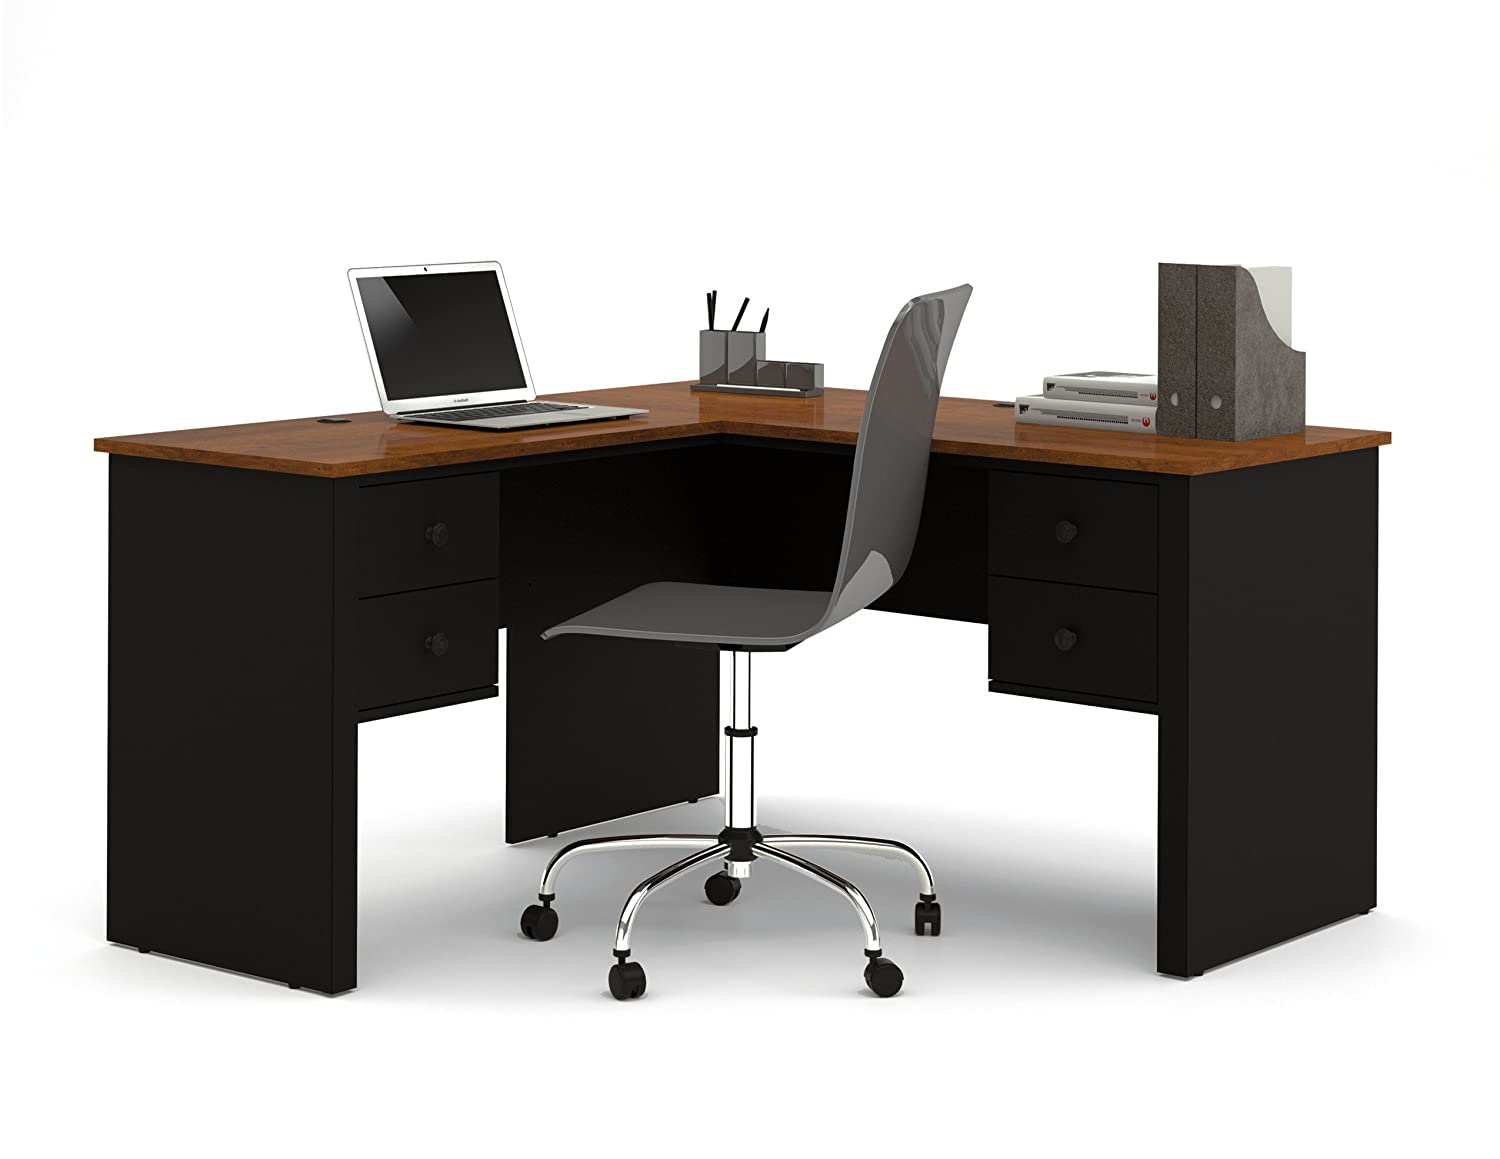 Lovely Amazon.com: Bestar Somerville L Shaped Desk, Black And Tuscany Brown:  Kitchen U0026 Dining